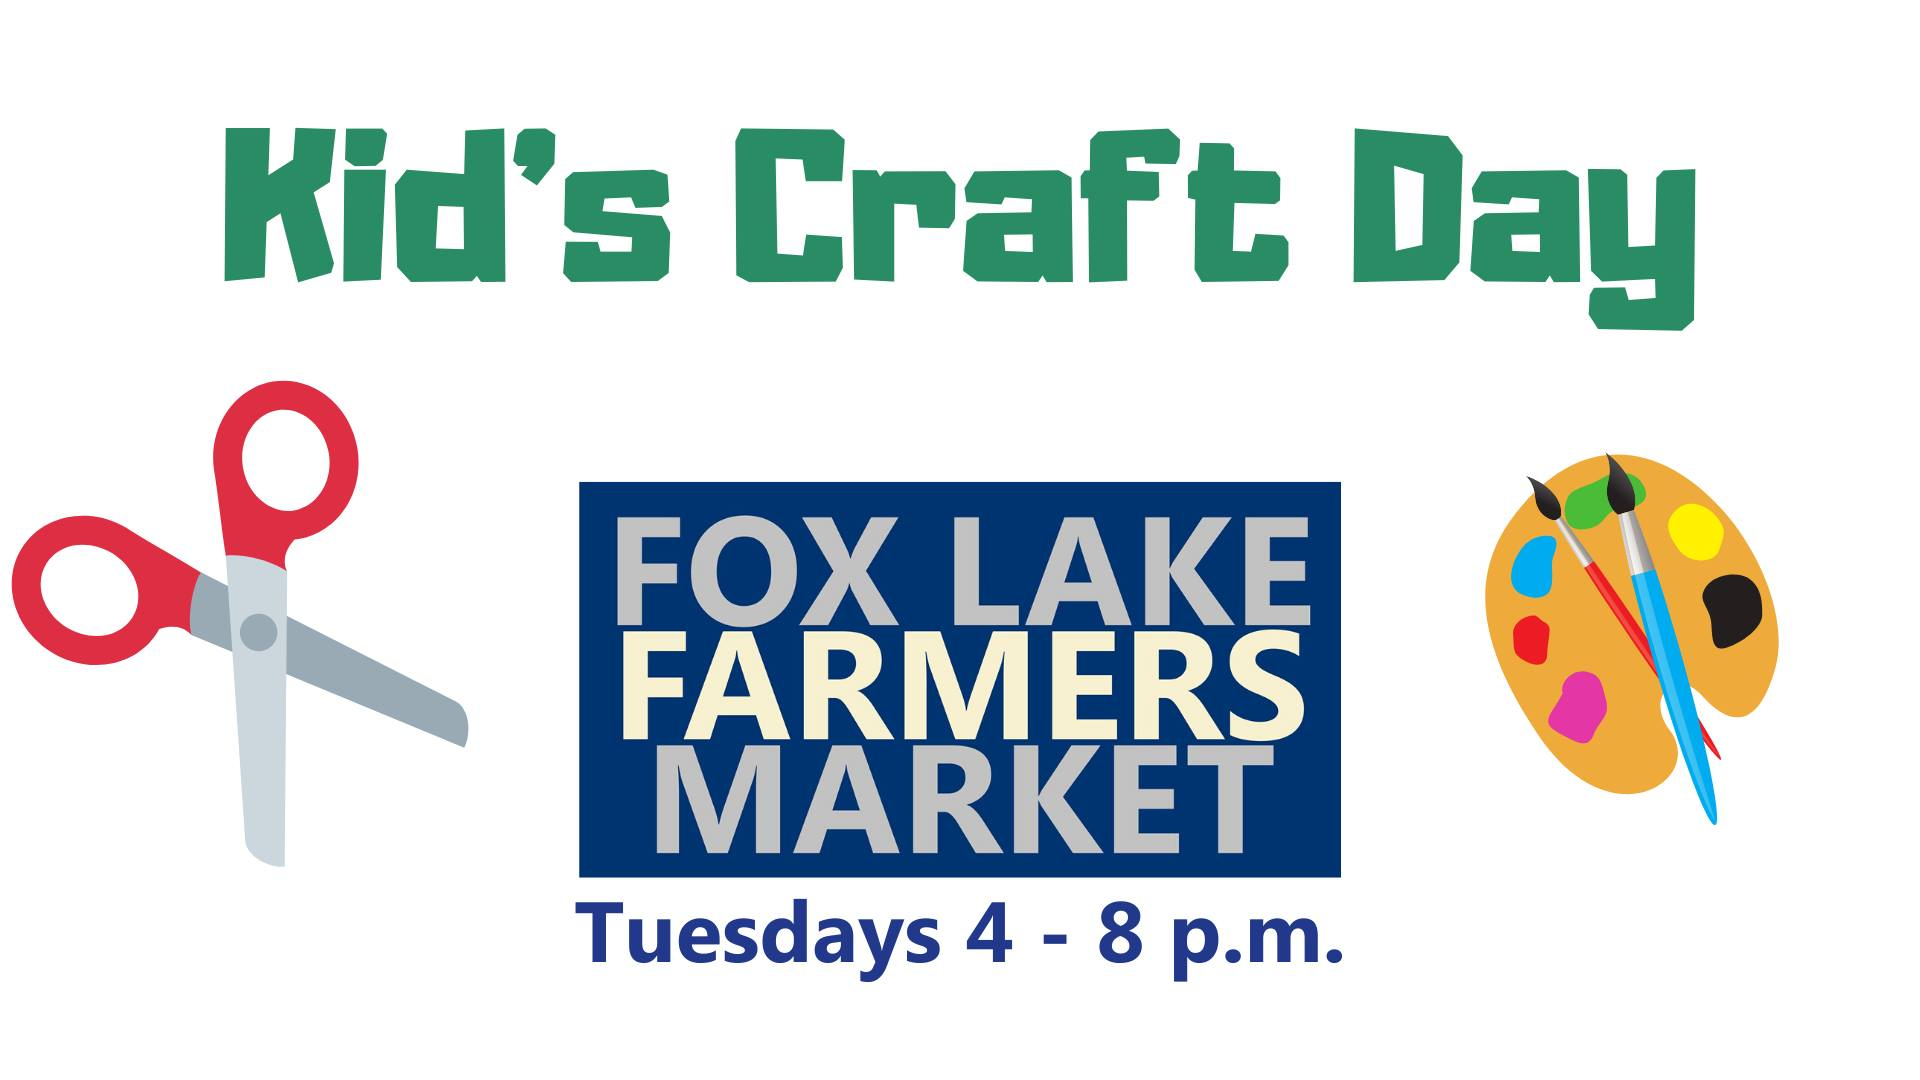 Kid's Craft Day at the Fox Lake Farmers Market